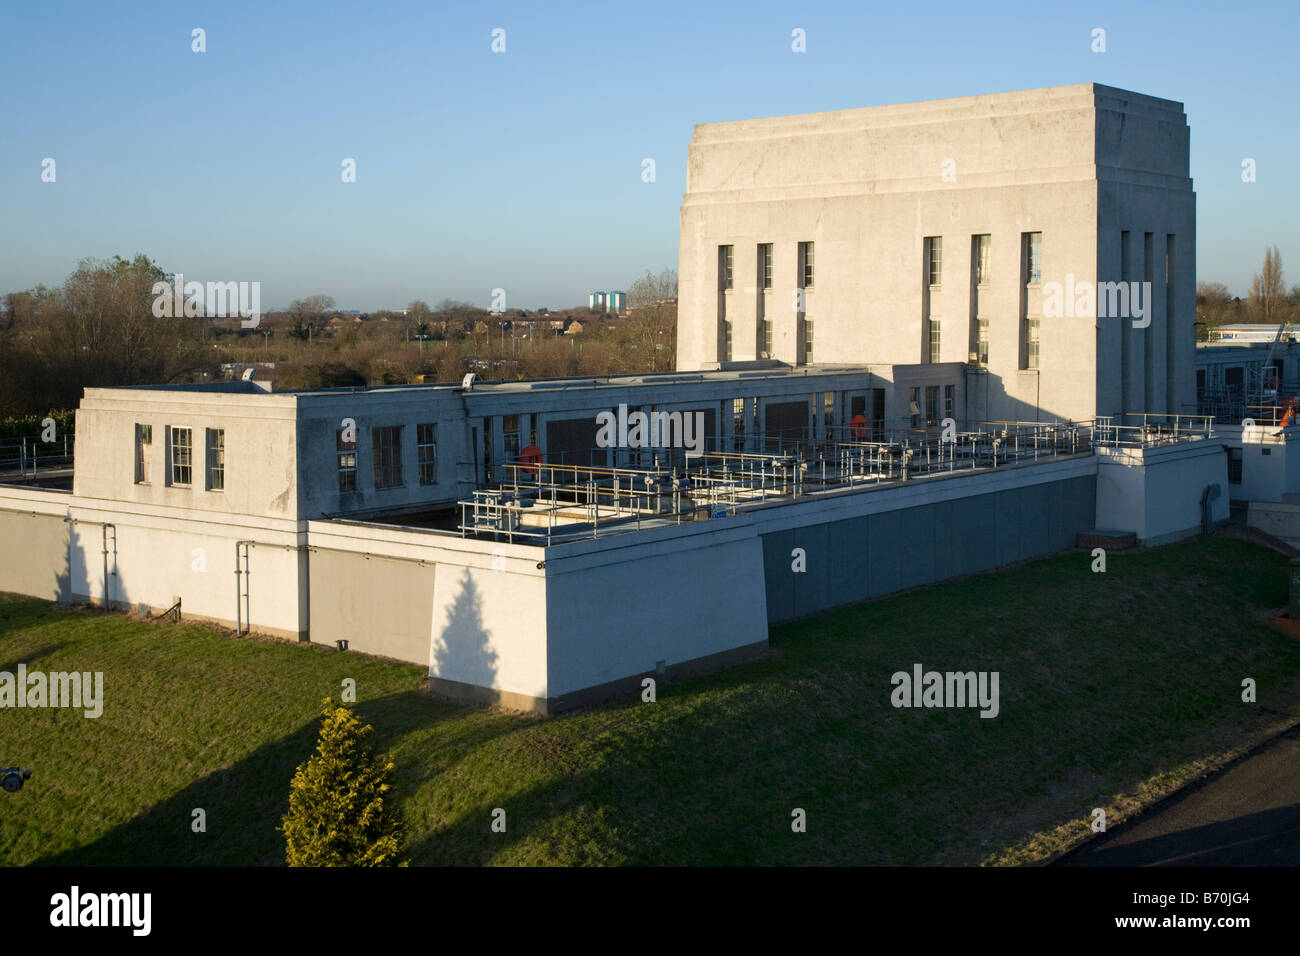 Thames Water treatment works at Kempton Park, Middlesex. UK. (44) Stock Photo